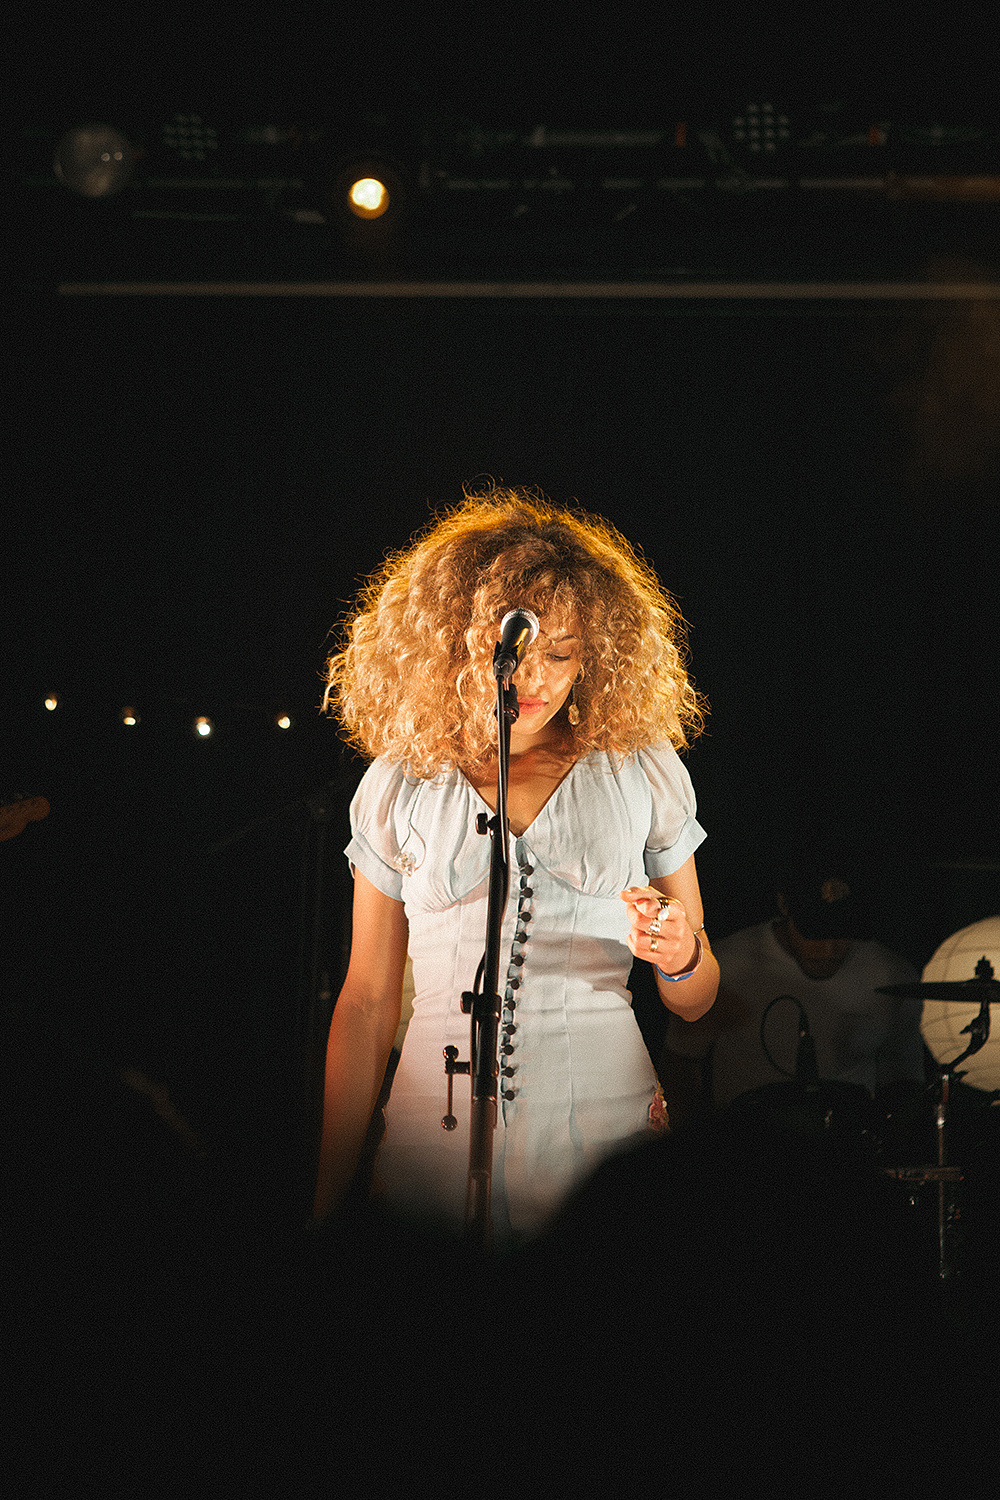 photo essay izzy bizu by sunny lau izzy bizu scala